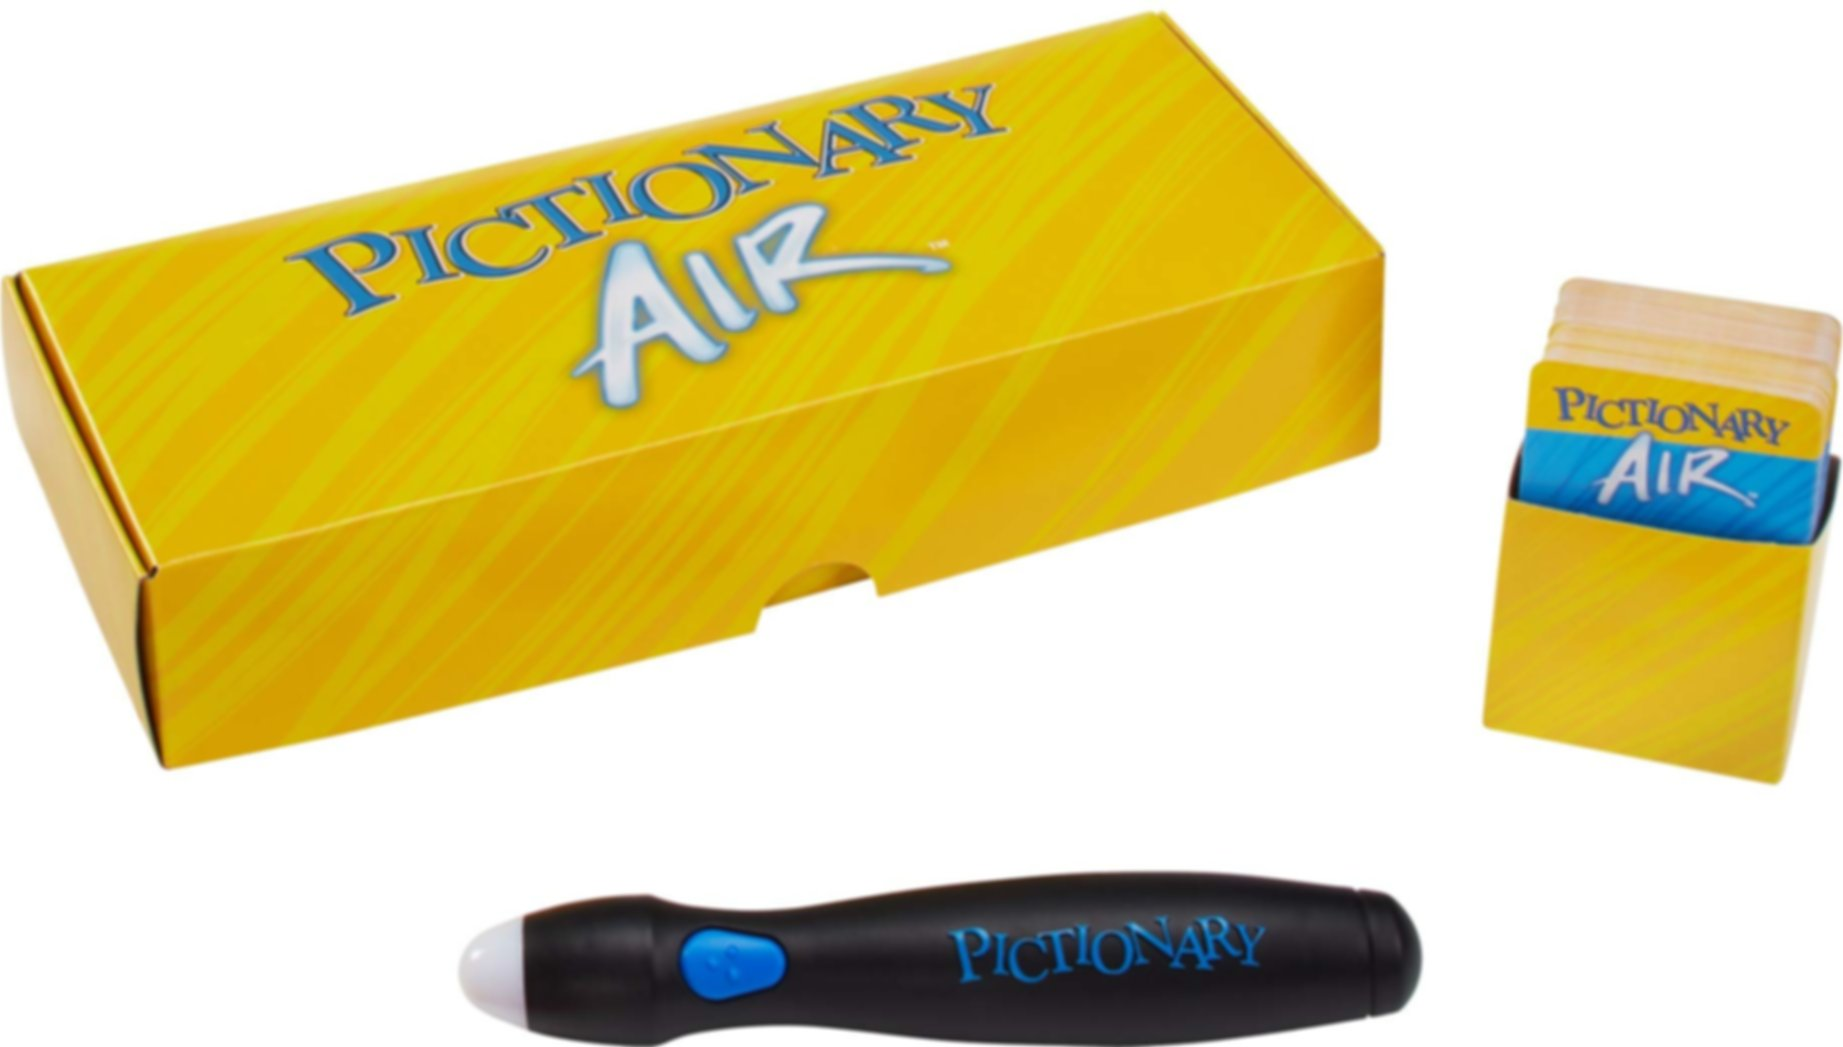 Pictionary Air components